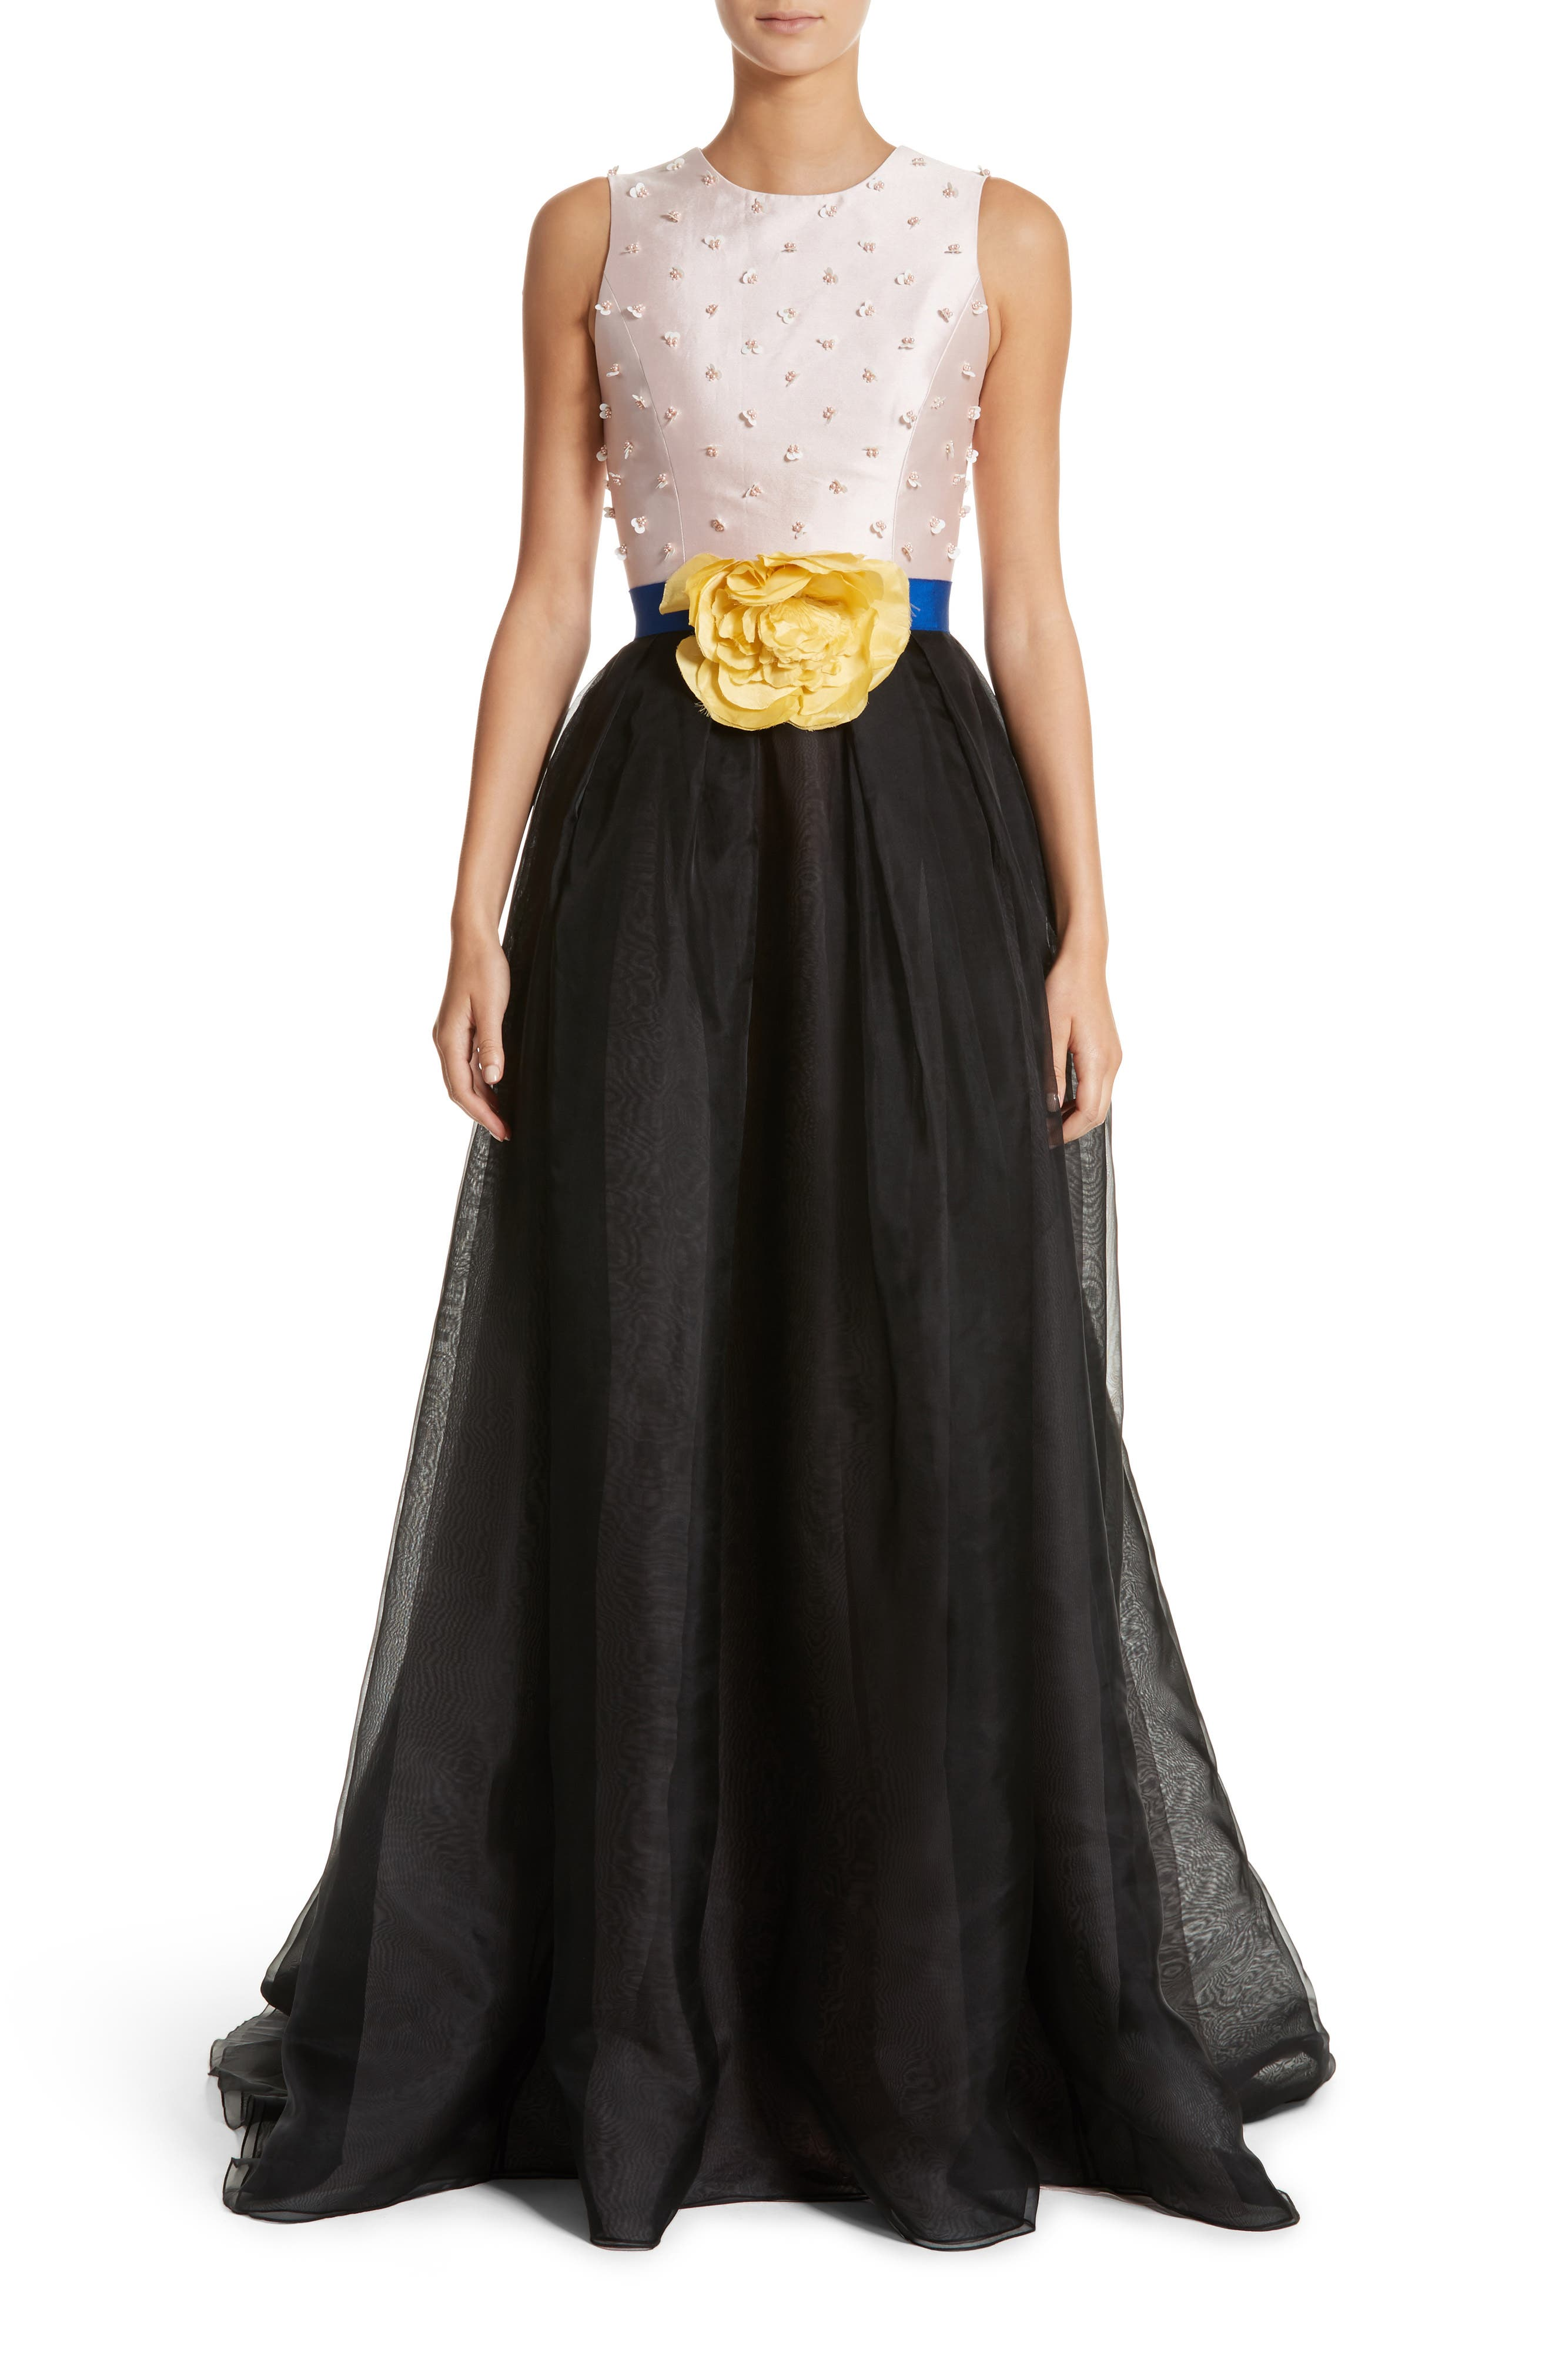 Carolina Herrera Colorblock Embellished Bodice Gown